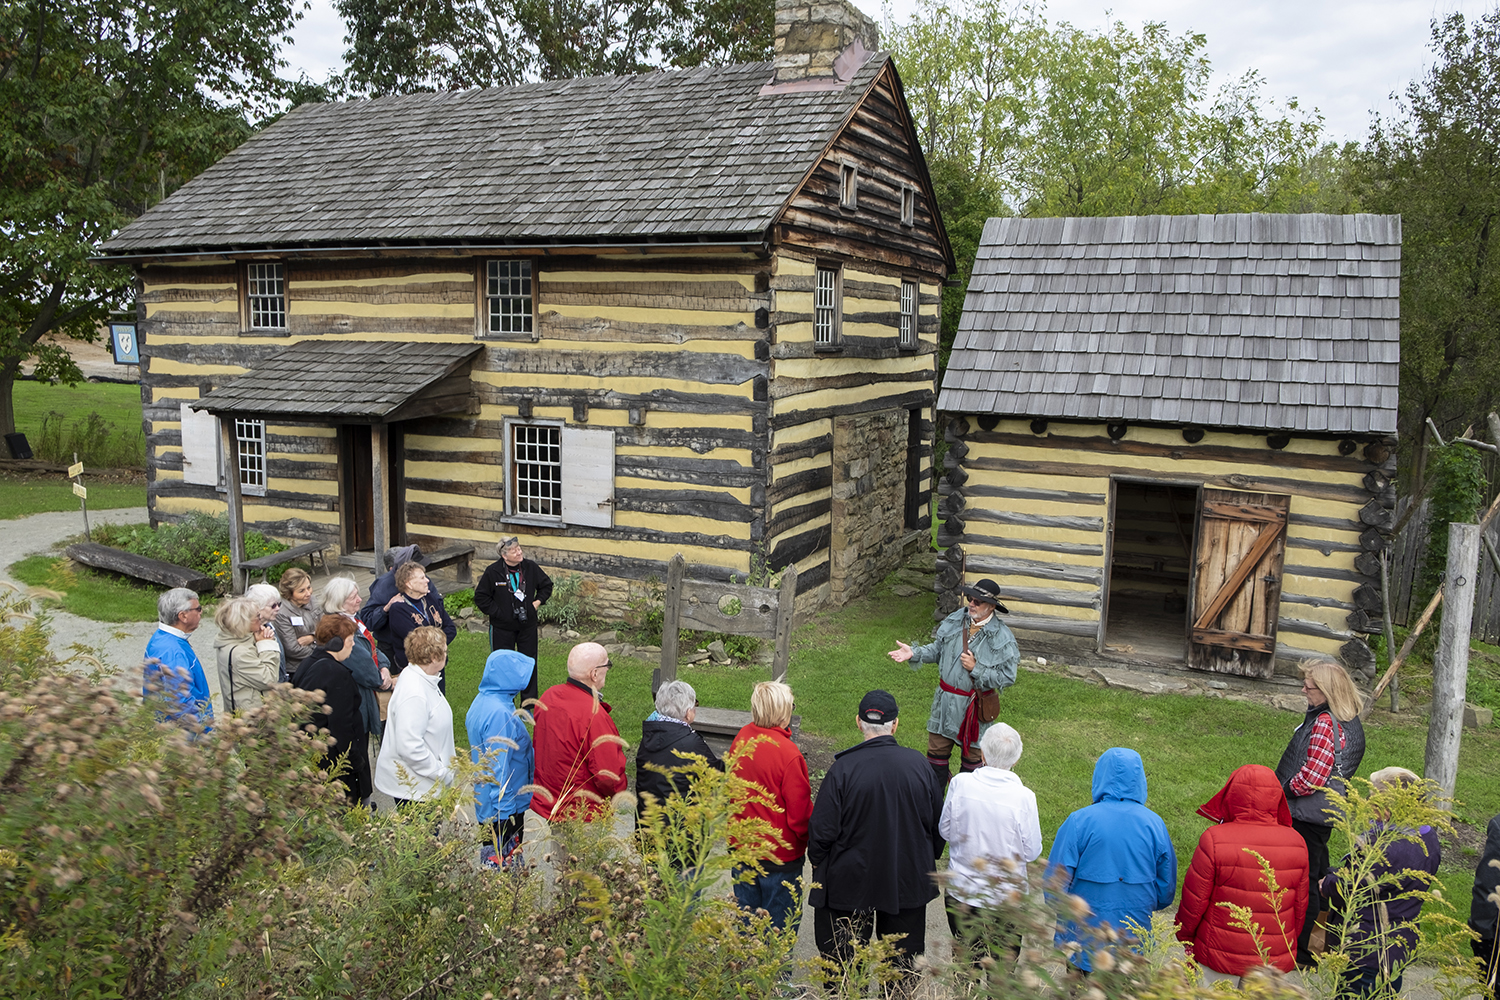 Visitors to Historic Hanna's Town can enjoy guided tours from May - October and educational programs and events throughout the year.